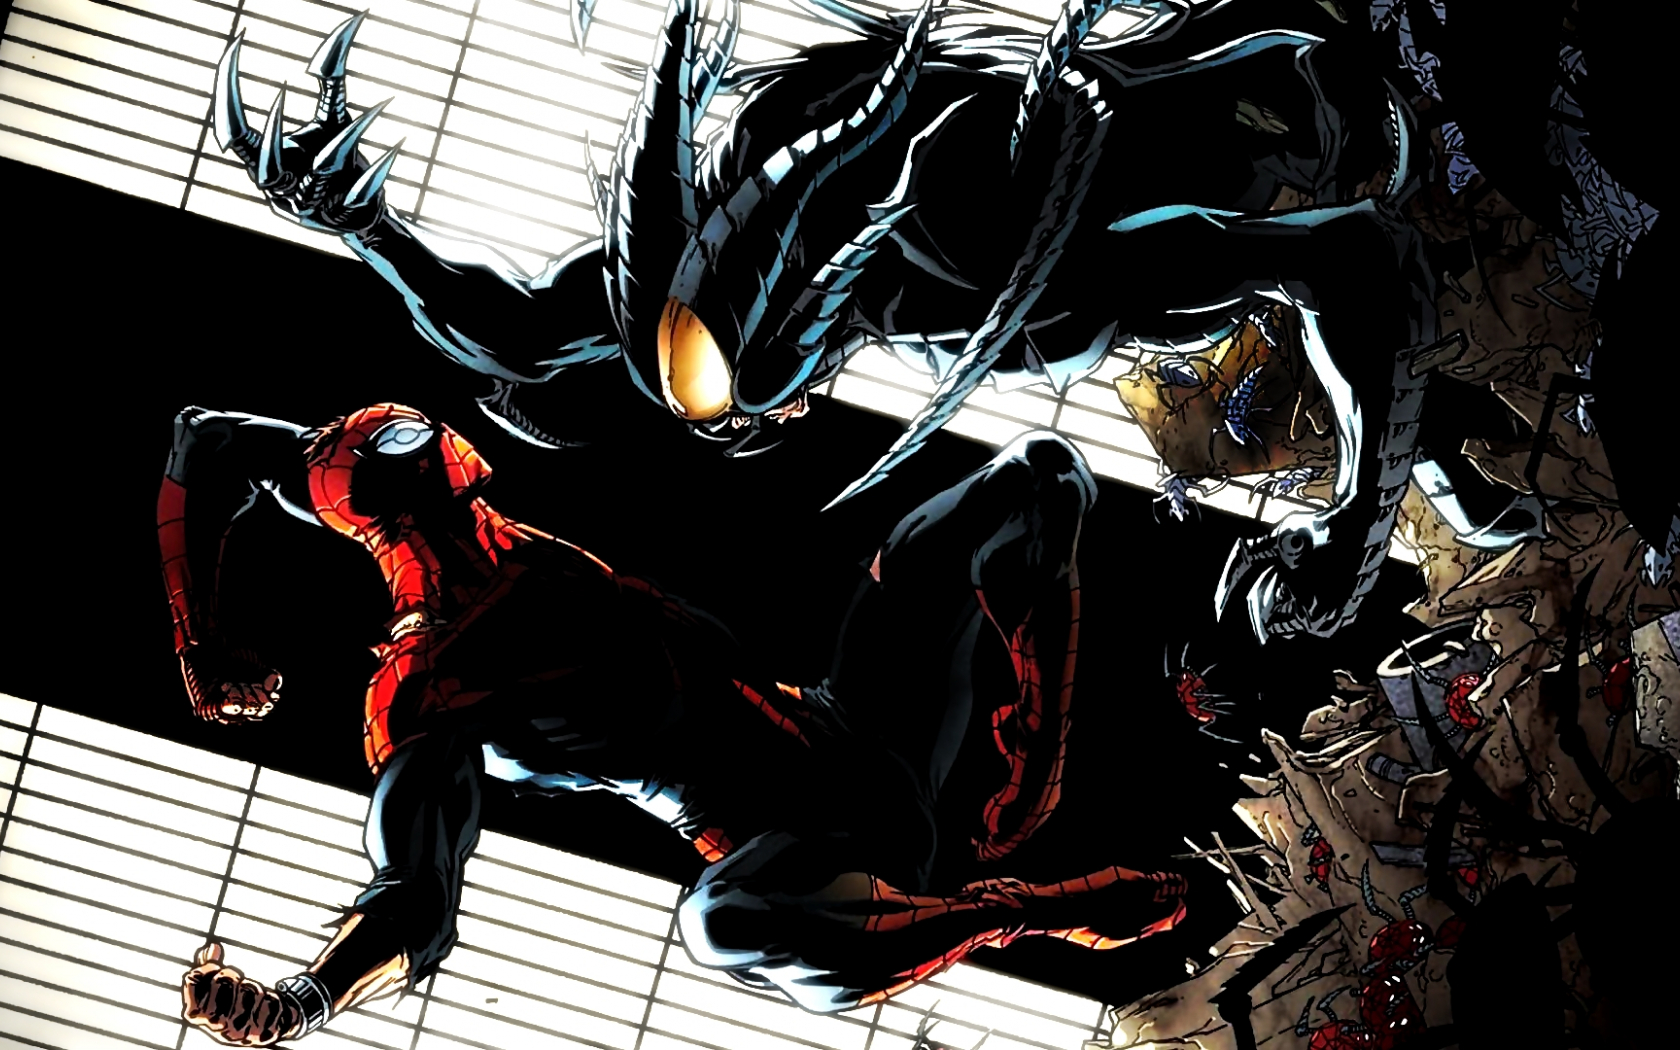 Free Download Superior Spider Man Wallpaper 6 1920 X 1080 Stmednet